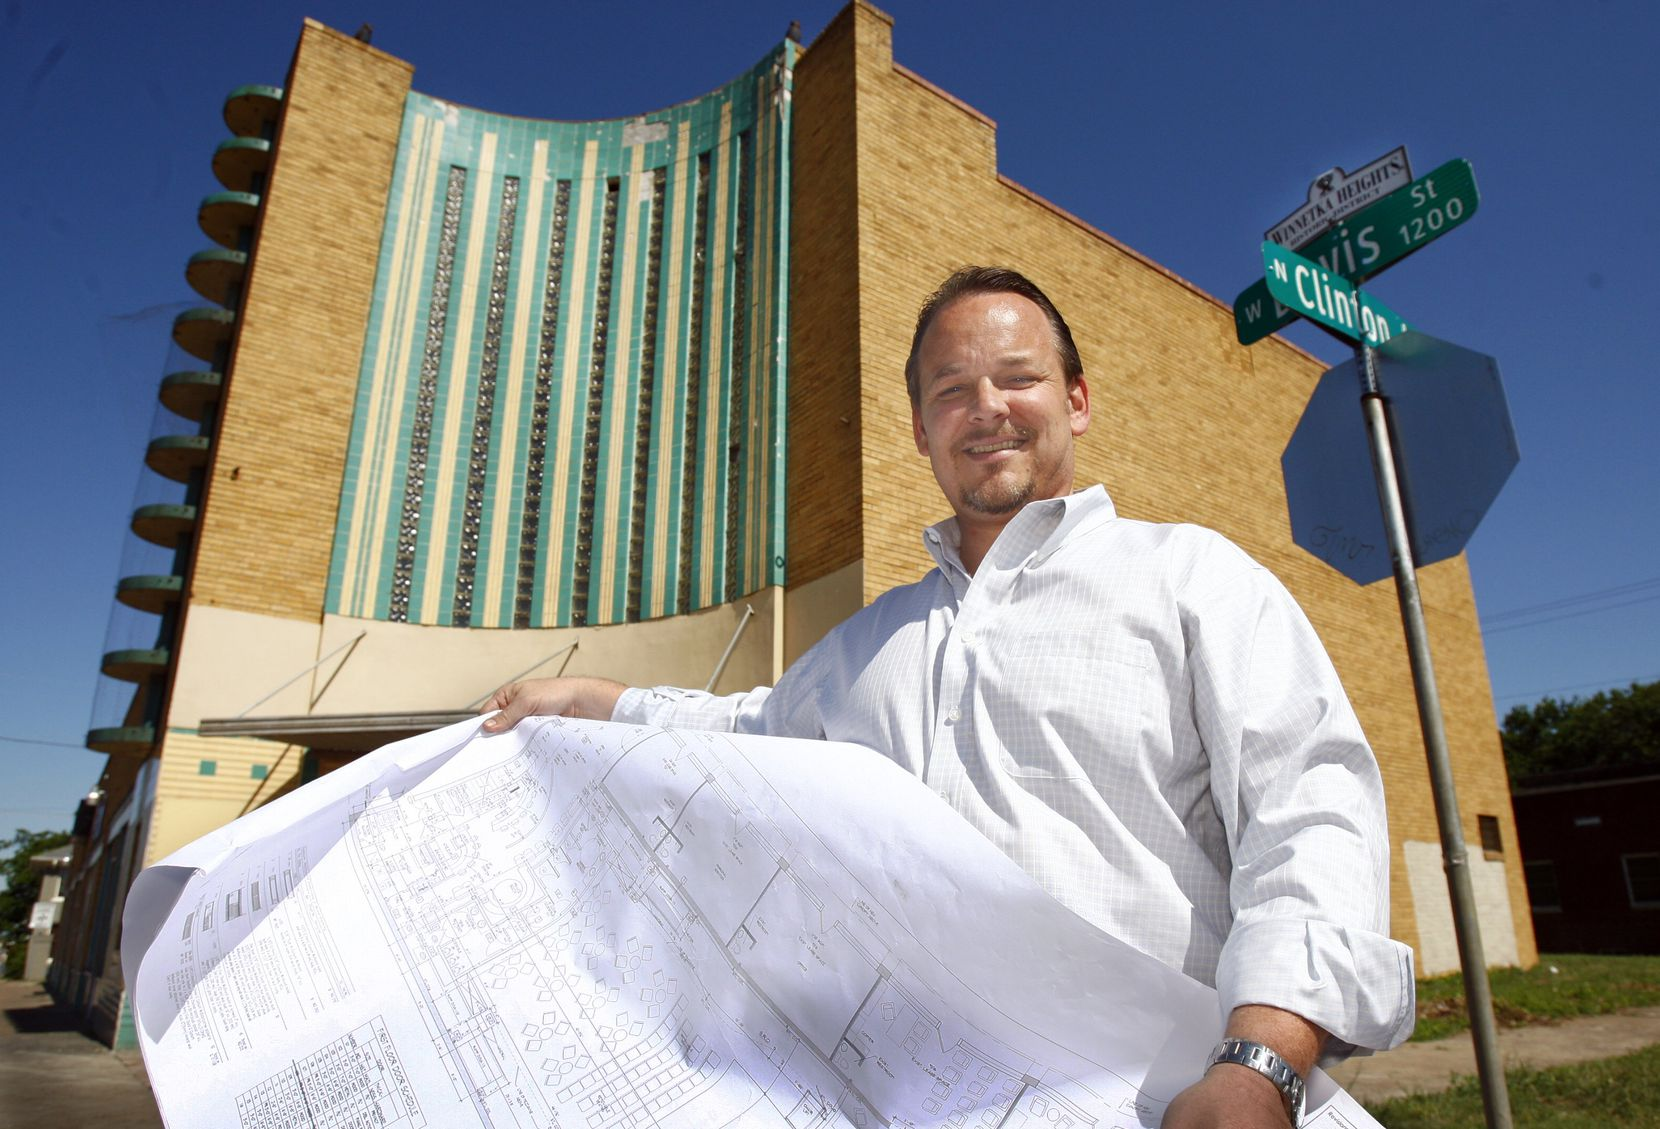 Edwin Cabaniss stood in front of the old Kessler Theater in Oak Cliff in 2009 with blueprints of the venue. Cabaniss was a driving force in helping arts organizations secure SVOG funding.